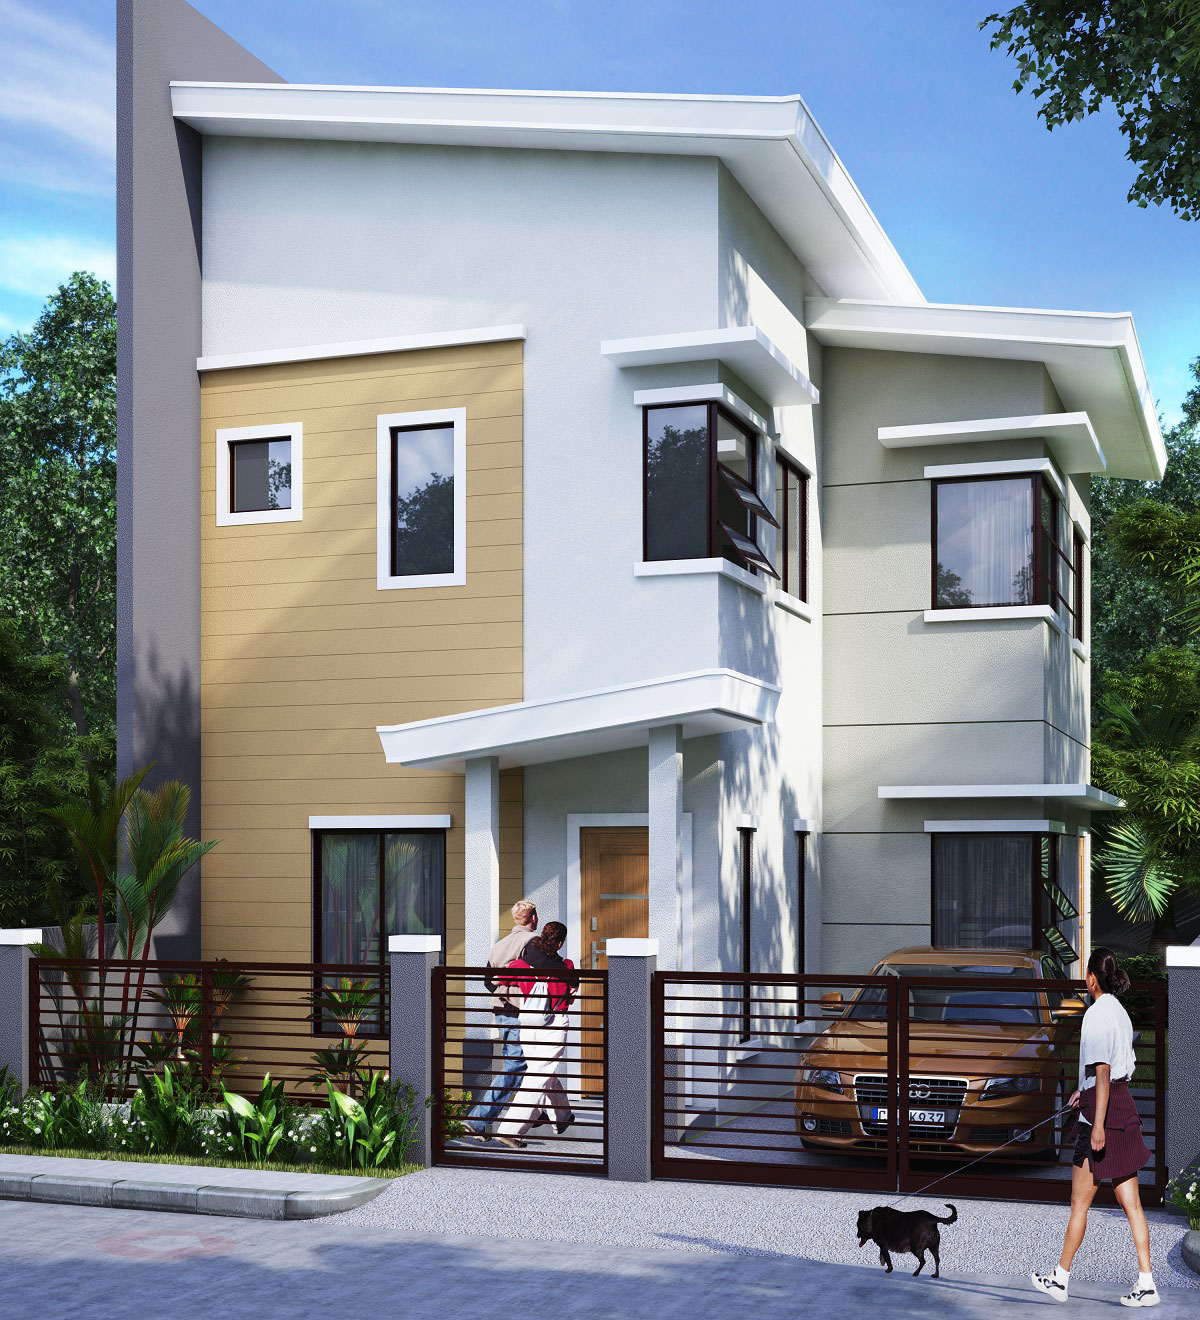 Granville iii subdivision economic and socialized housing for Apartment model house